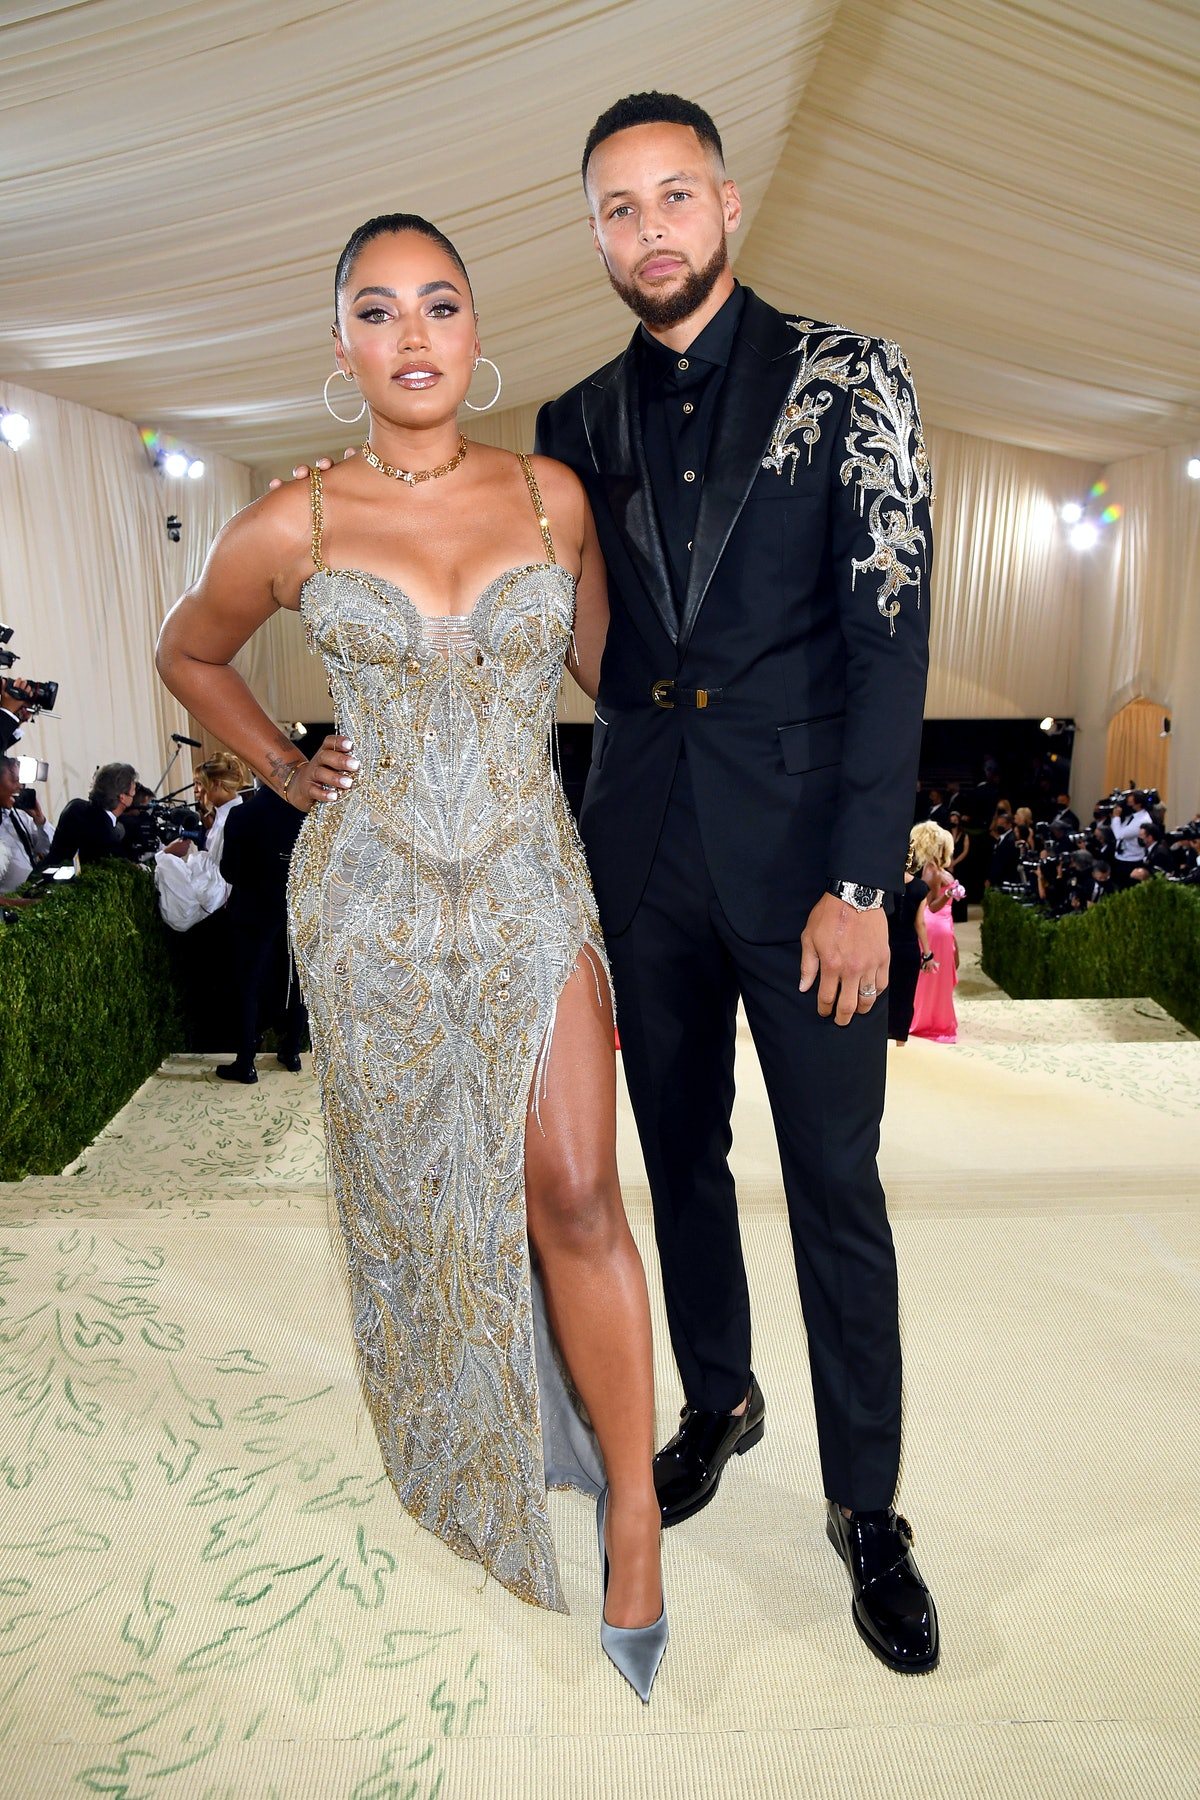 Stephen Curry and Ayesha Curry attends the The 2021 Met Gala Celebrating In America: A Lexicon Of Fa...